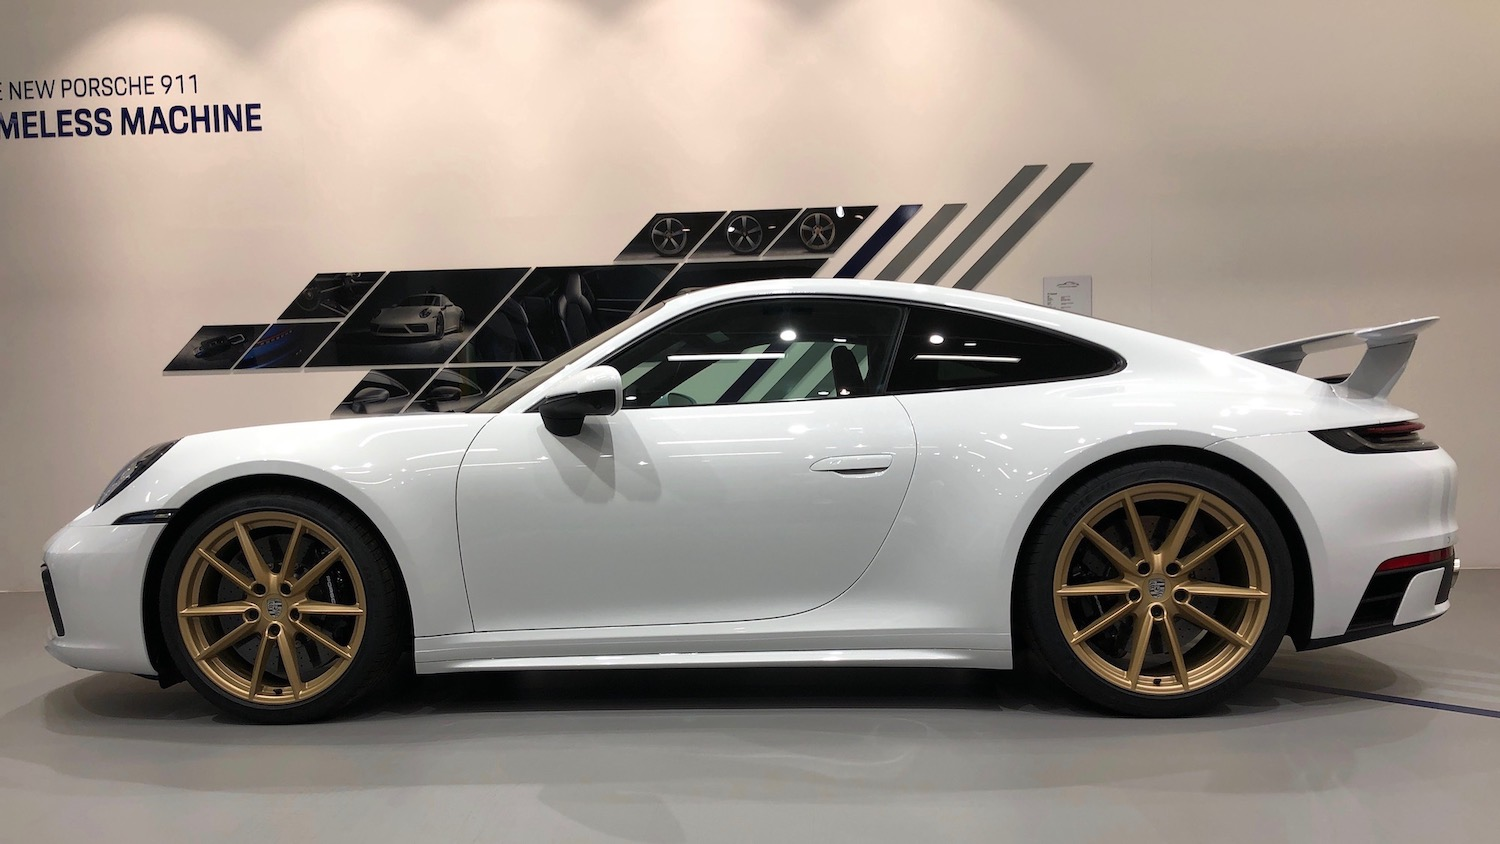 SportDesign side skirts on 911 side-view